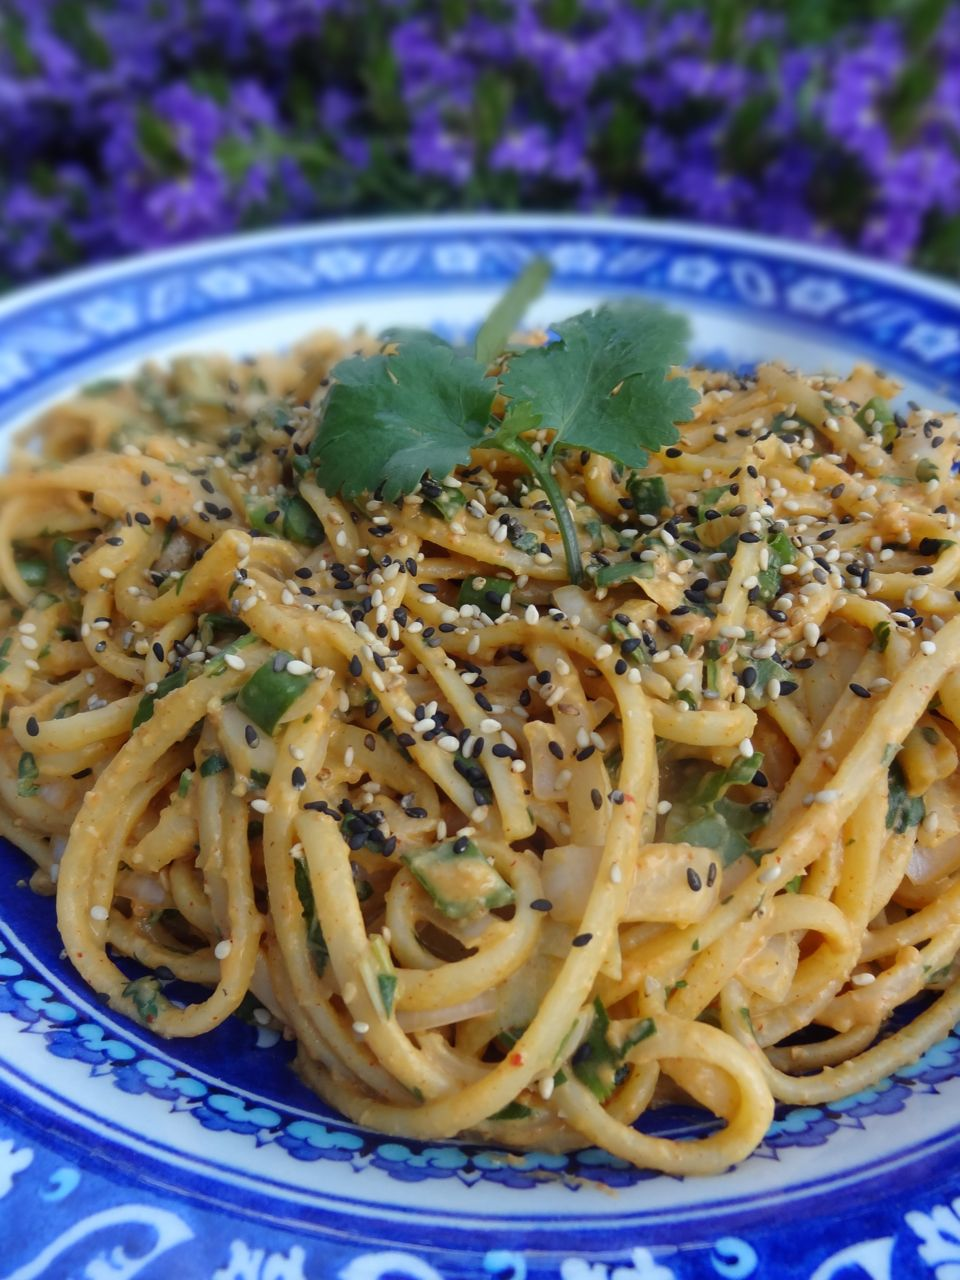 scrumpdillyicious: cold noodles with spicy red curry